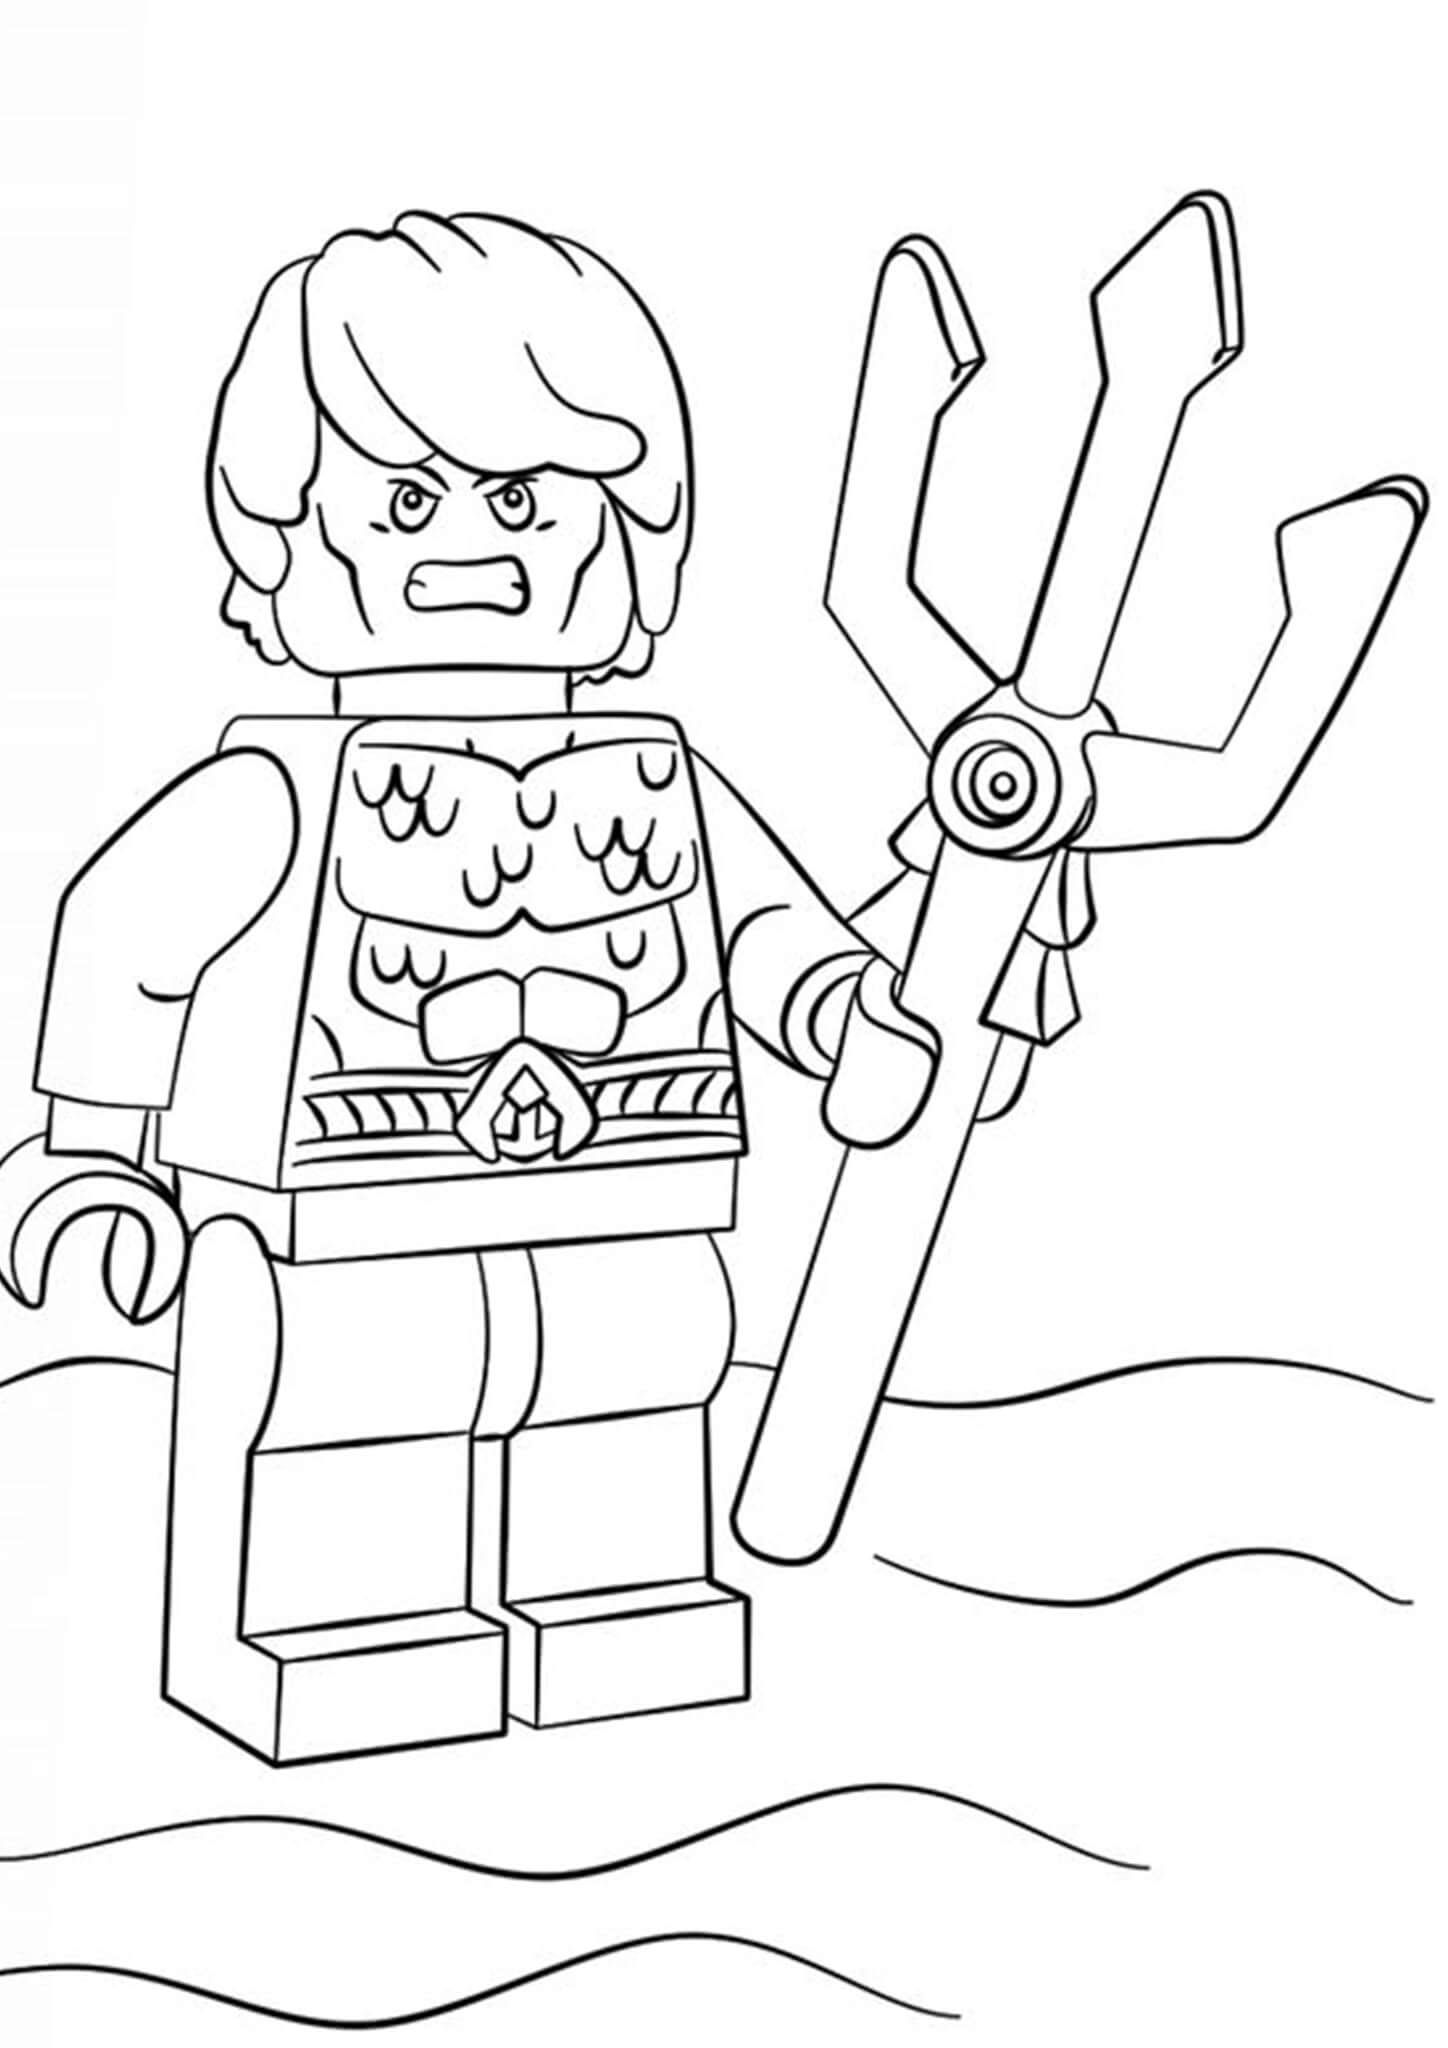 Free Easy To Print Lego Coloring Pages Lego Coloring Pages Lego Coloring Superhero Coloring Pages [ 2048 x 1448 Pixel ]